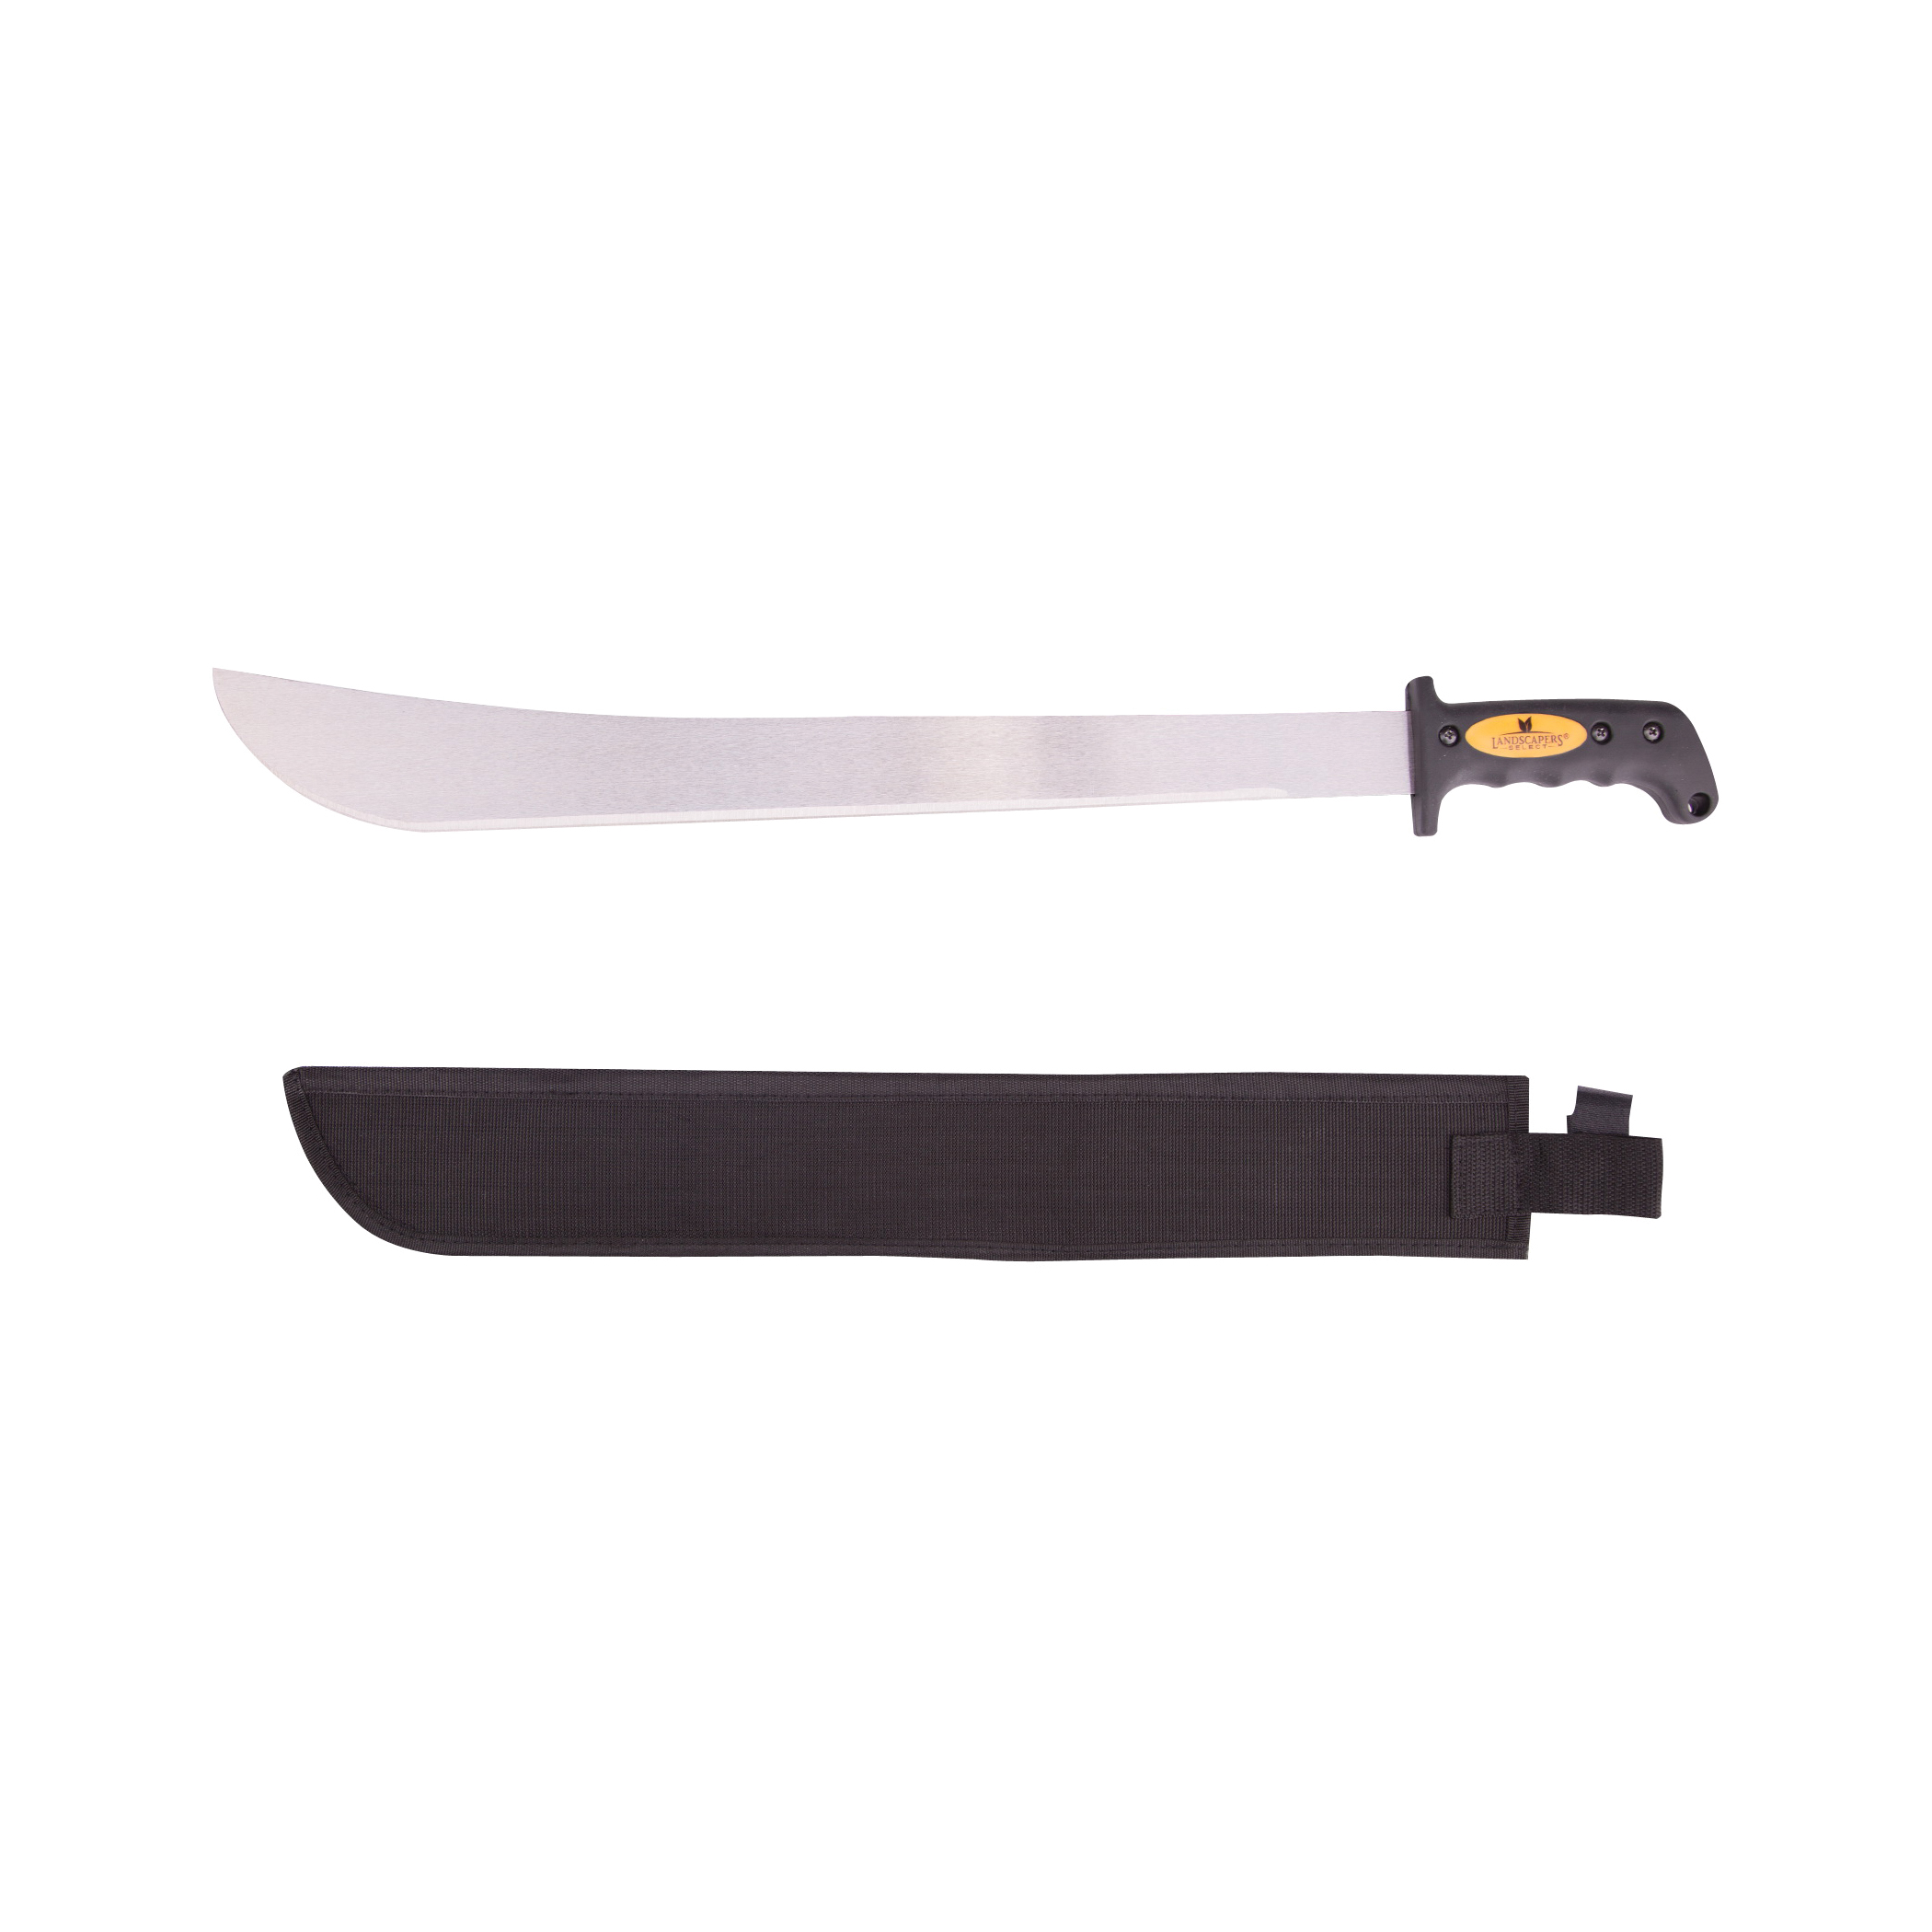 Picture of Landscapers Select JLO-003-N3L 22 in Blade, 27-1/2 in OAL, 22 in Blade, High Carbon Steel Blade, Rubber Handle